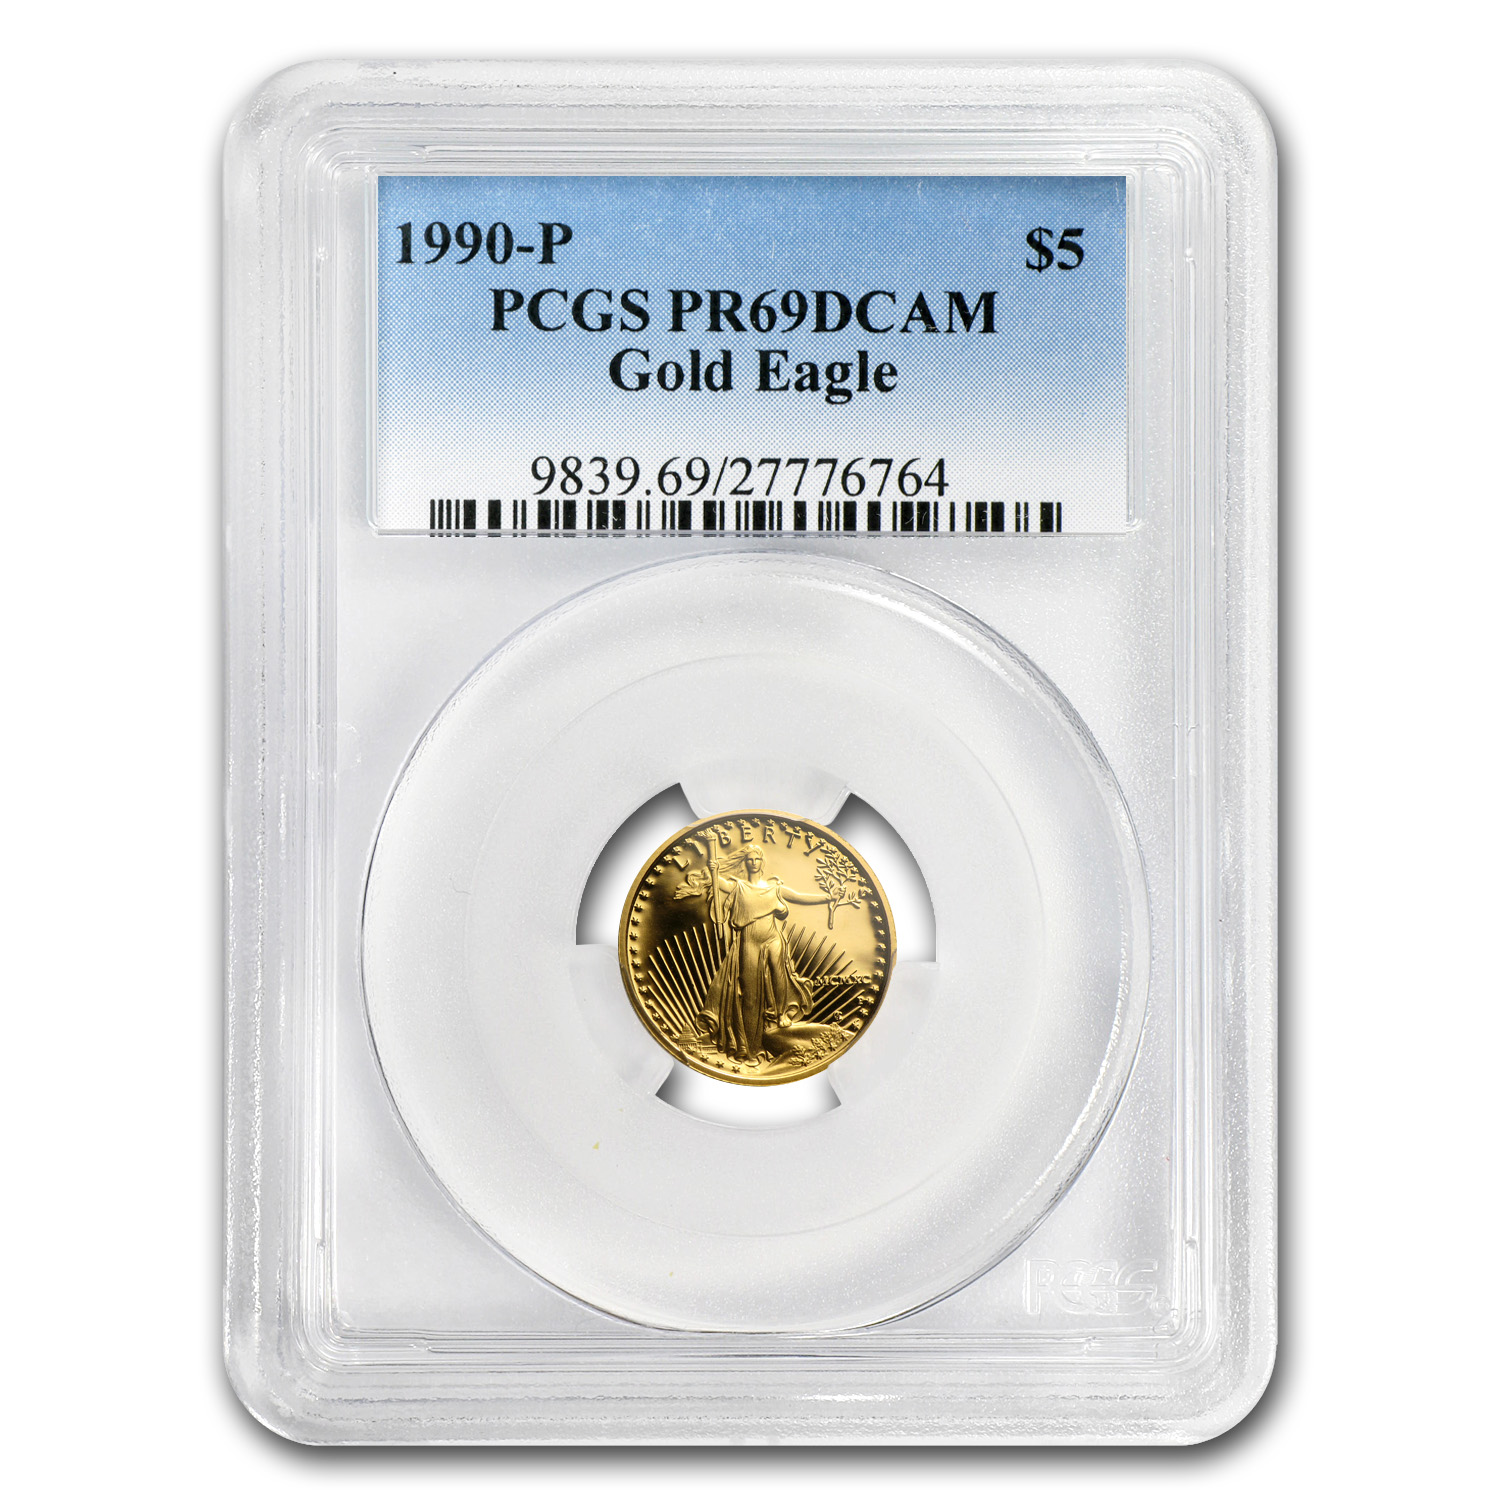 1990-P 1/10 oz Proof Gold American Eagle PR-69 PCGS